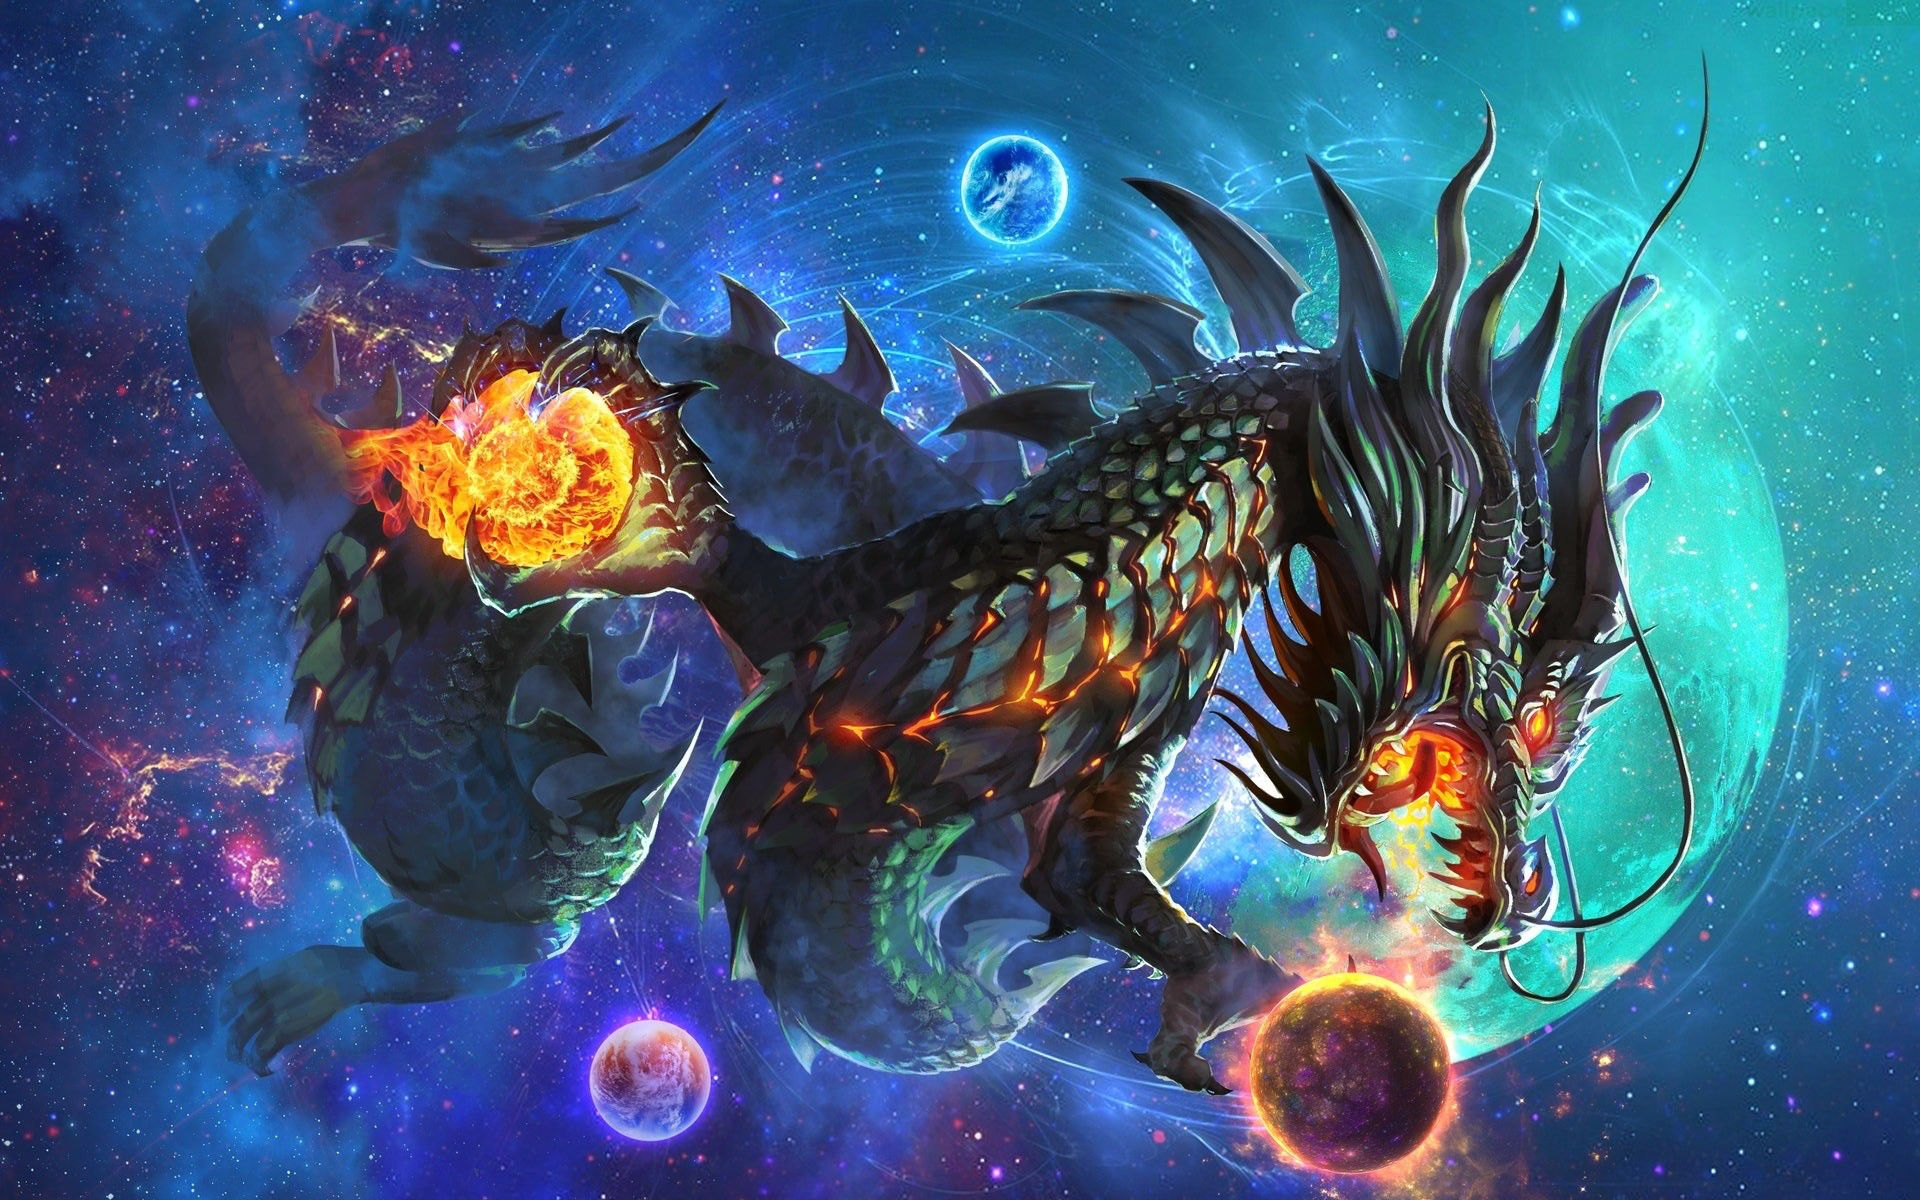 Fantasy Dragon Wallpaper